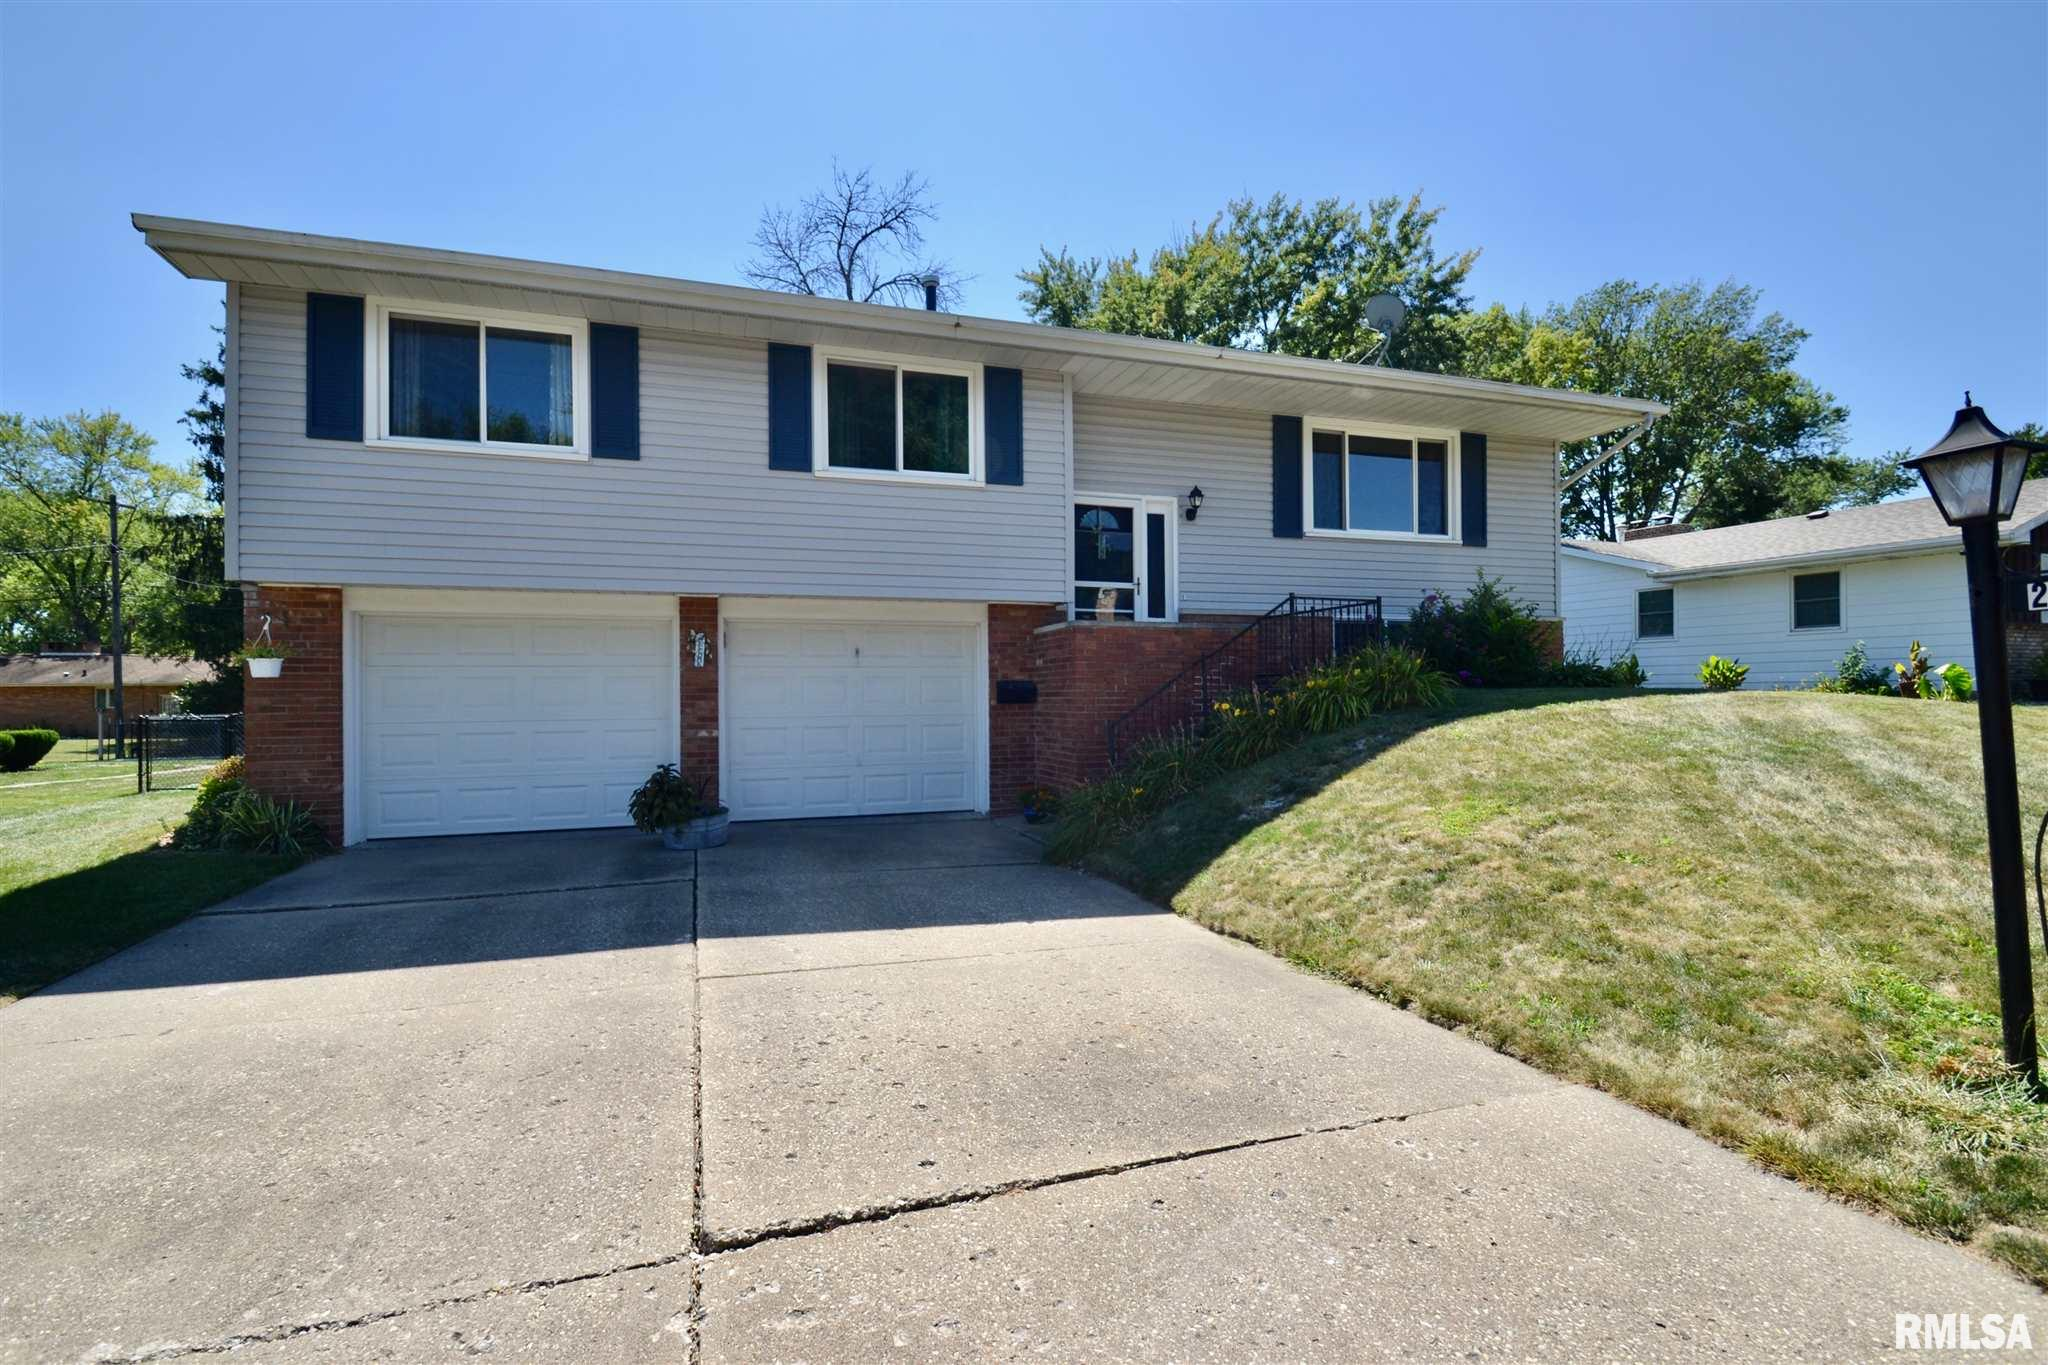 2806 W WARDCLIFFE Property Photo - Peoria, IL real estate listing